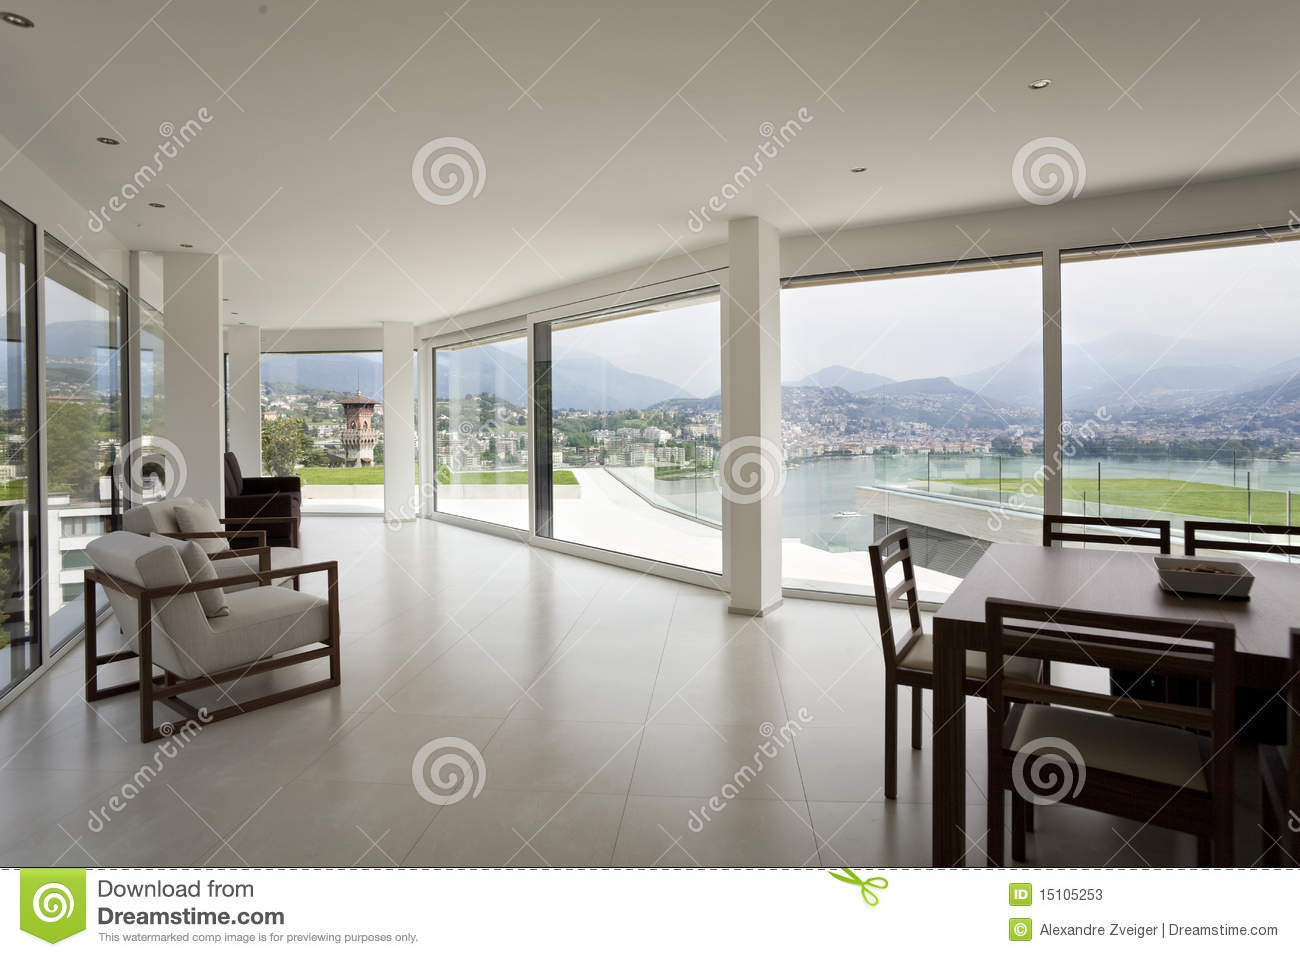 Bel int rieur d 39 une maison moderne image stock image 15105253 for Photo maison moderne interieur